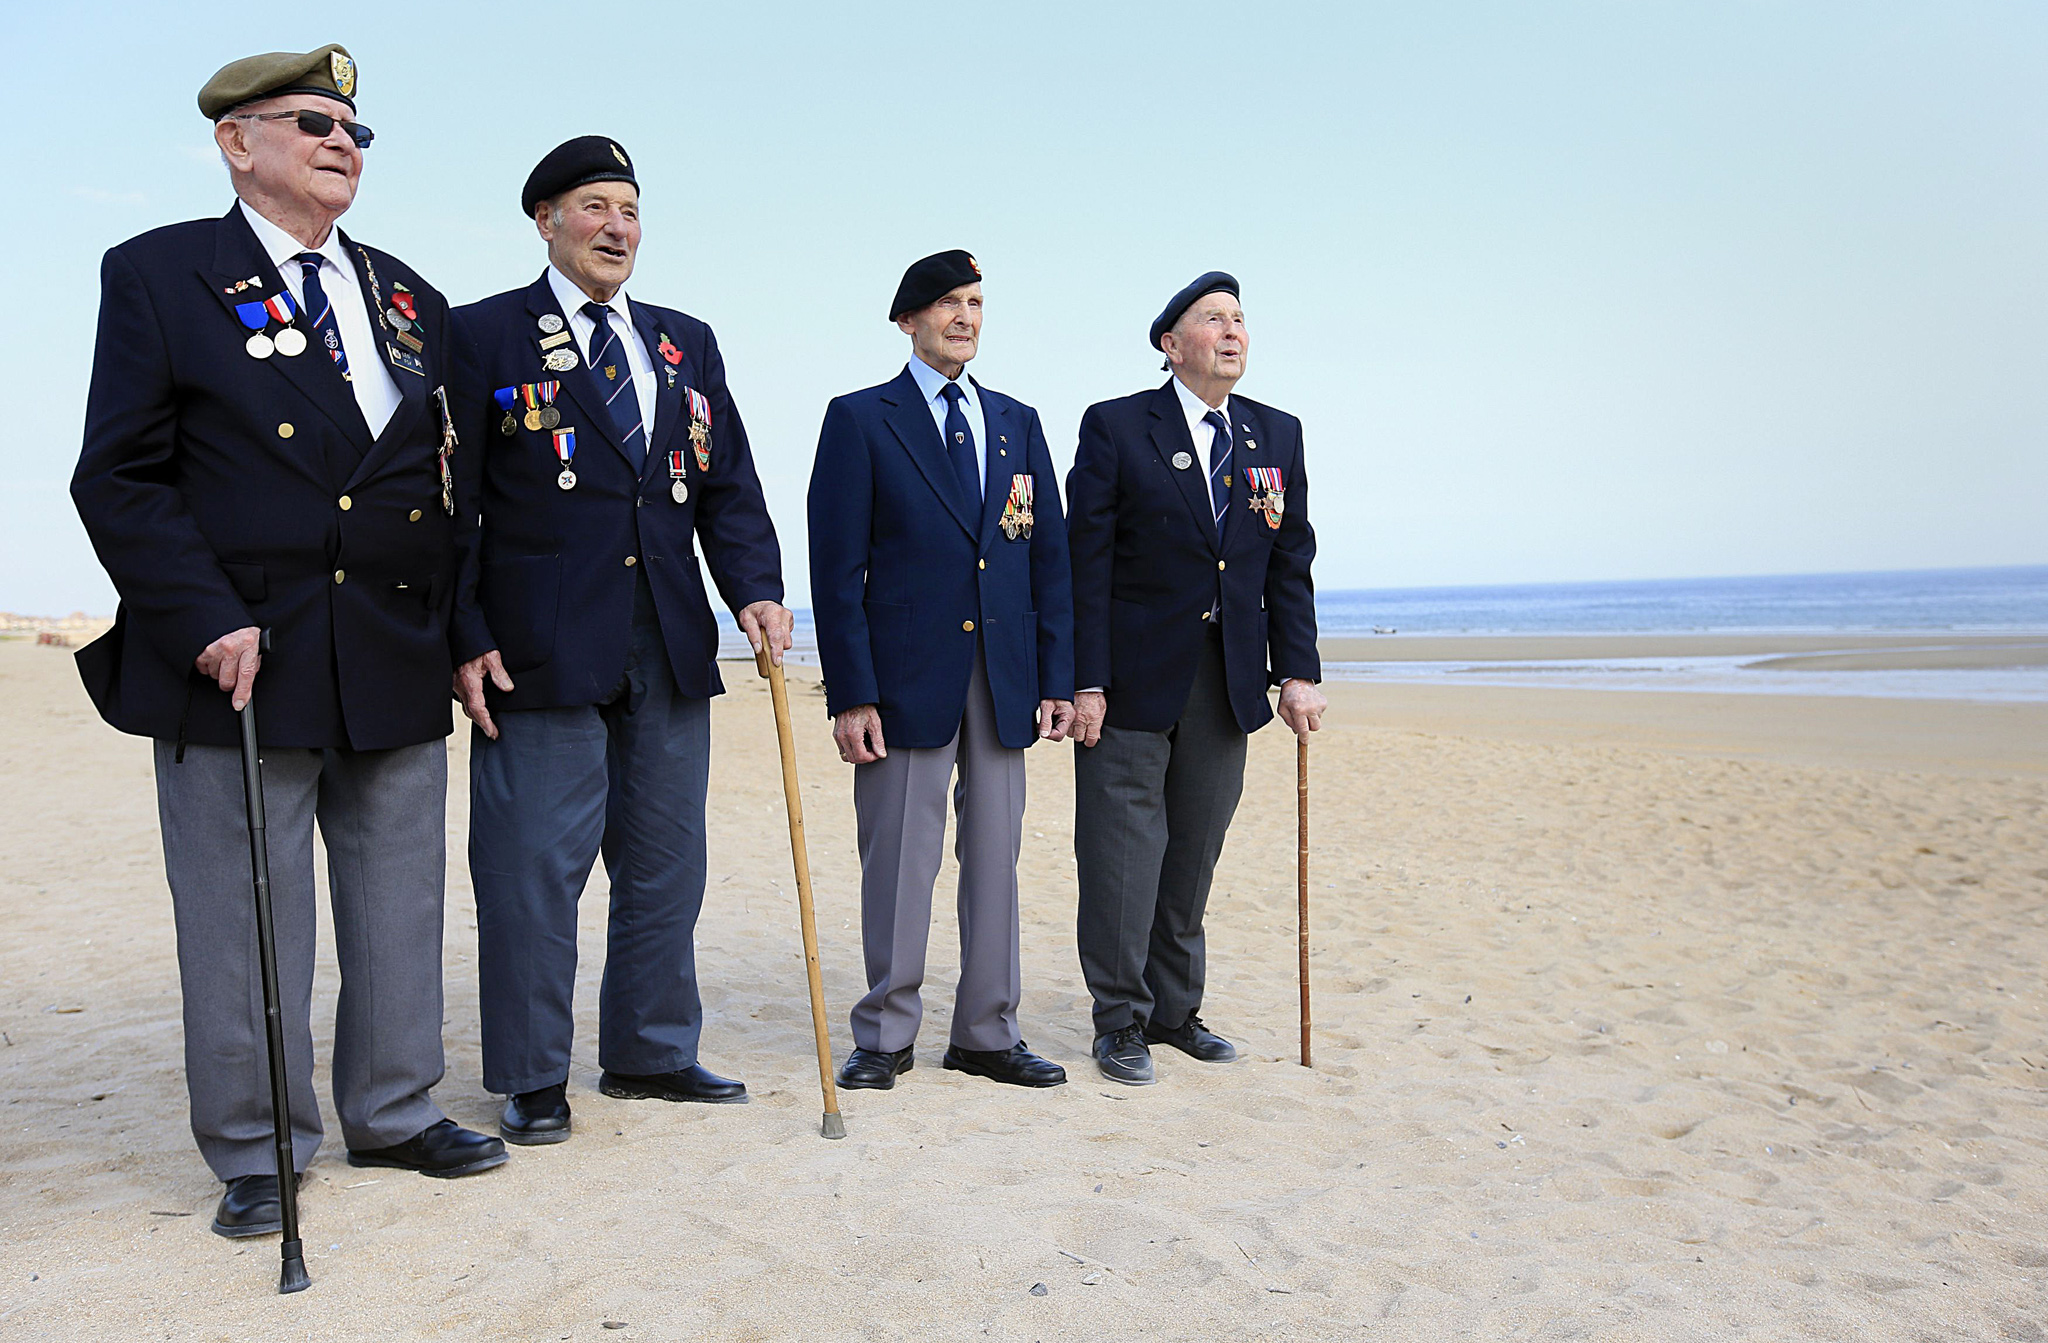 Veterans from the Norfolk and District branch of the Normandy Veterans Association (from the left) Len Fox, Peter Hemp, Neville Howell and David Woodrow stand on Sword beach in Normandy, France, as dozens of British veterans made a cross-Channel pilgrimage to Normandy to honour the legacy of comrades killed in the D-Day landings 71 years ago. PRESS ASSOCIATION Photo. Picture date: Friday June 5, 2015. Around 150 ex-servicemen have travelled to northern France to attend events commemorating the military invasion on June 6 1944 which changed the course of history, the Spirit of Normandy Trust said. See PA story MEMORIAL DDay. Photo credit should read: Jonathan Brady/PA Wire